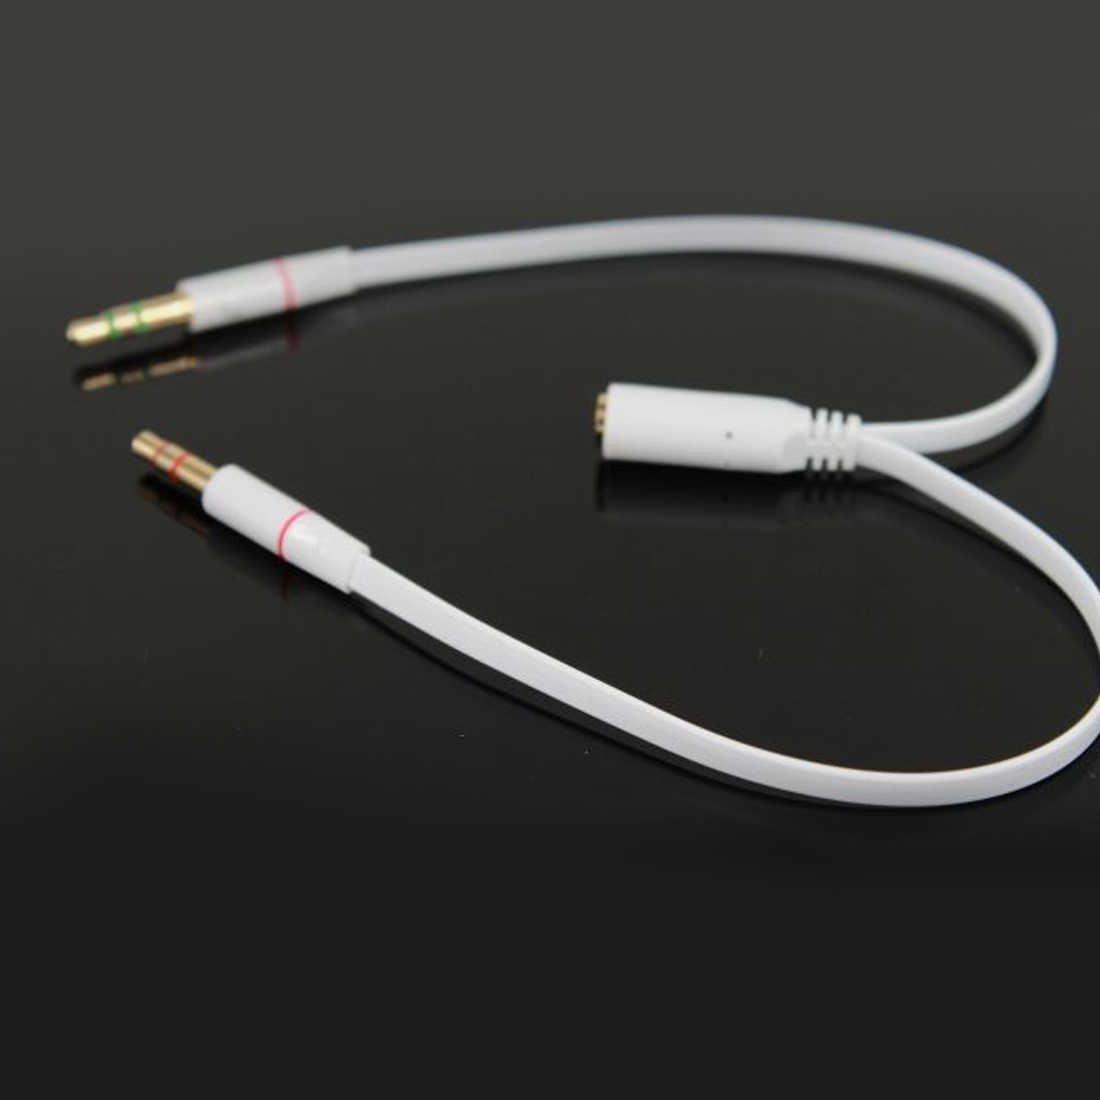 Marsnaska Putih 3.5 Mm Headphone Earphone Audio Kabel Micphone Y Splitter Adaptor 1 Perempuan untuk 2 Male Terhubung Kabel untuk laptop PC